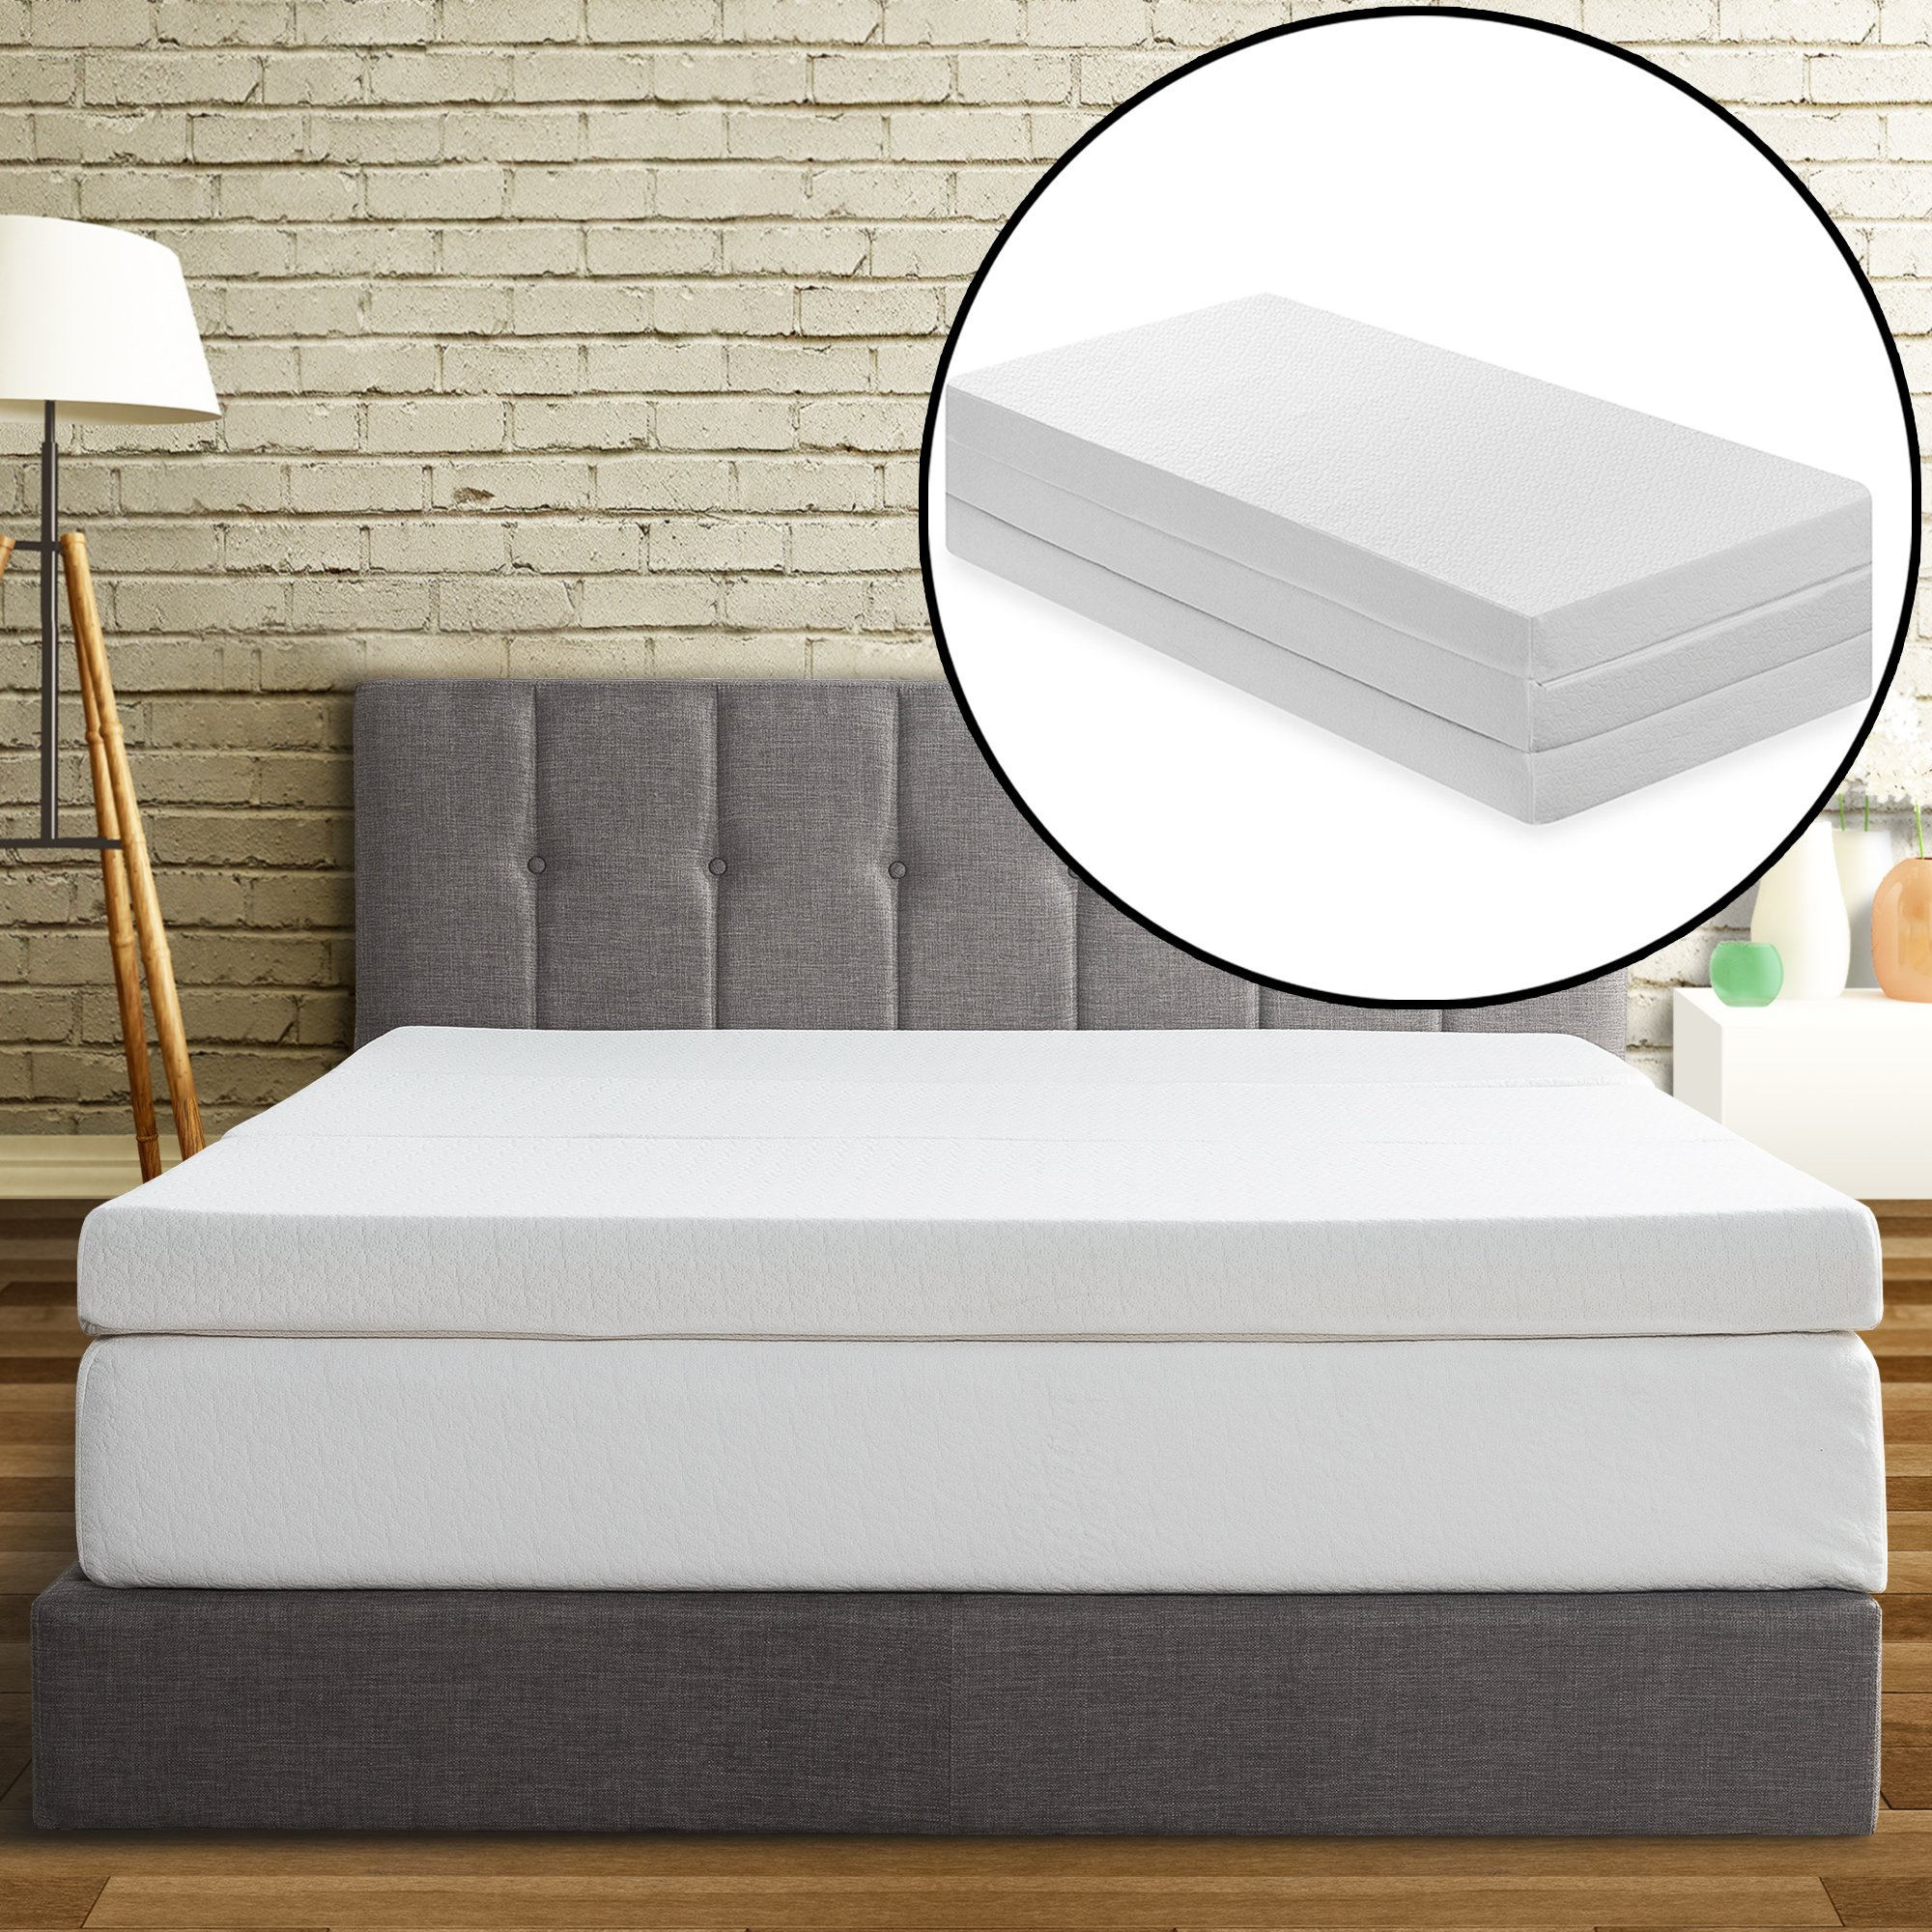 Best Price Mattress Tri-Fold Memory Foam Mattress Topper, 4-Inch by Best Price Mattress